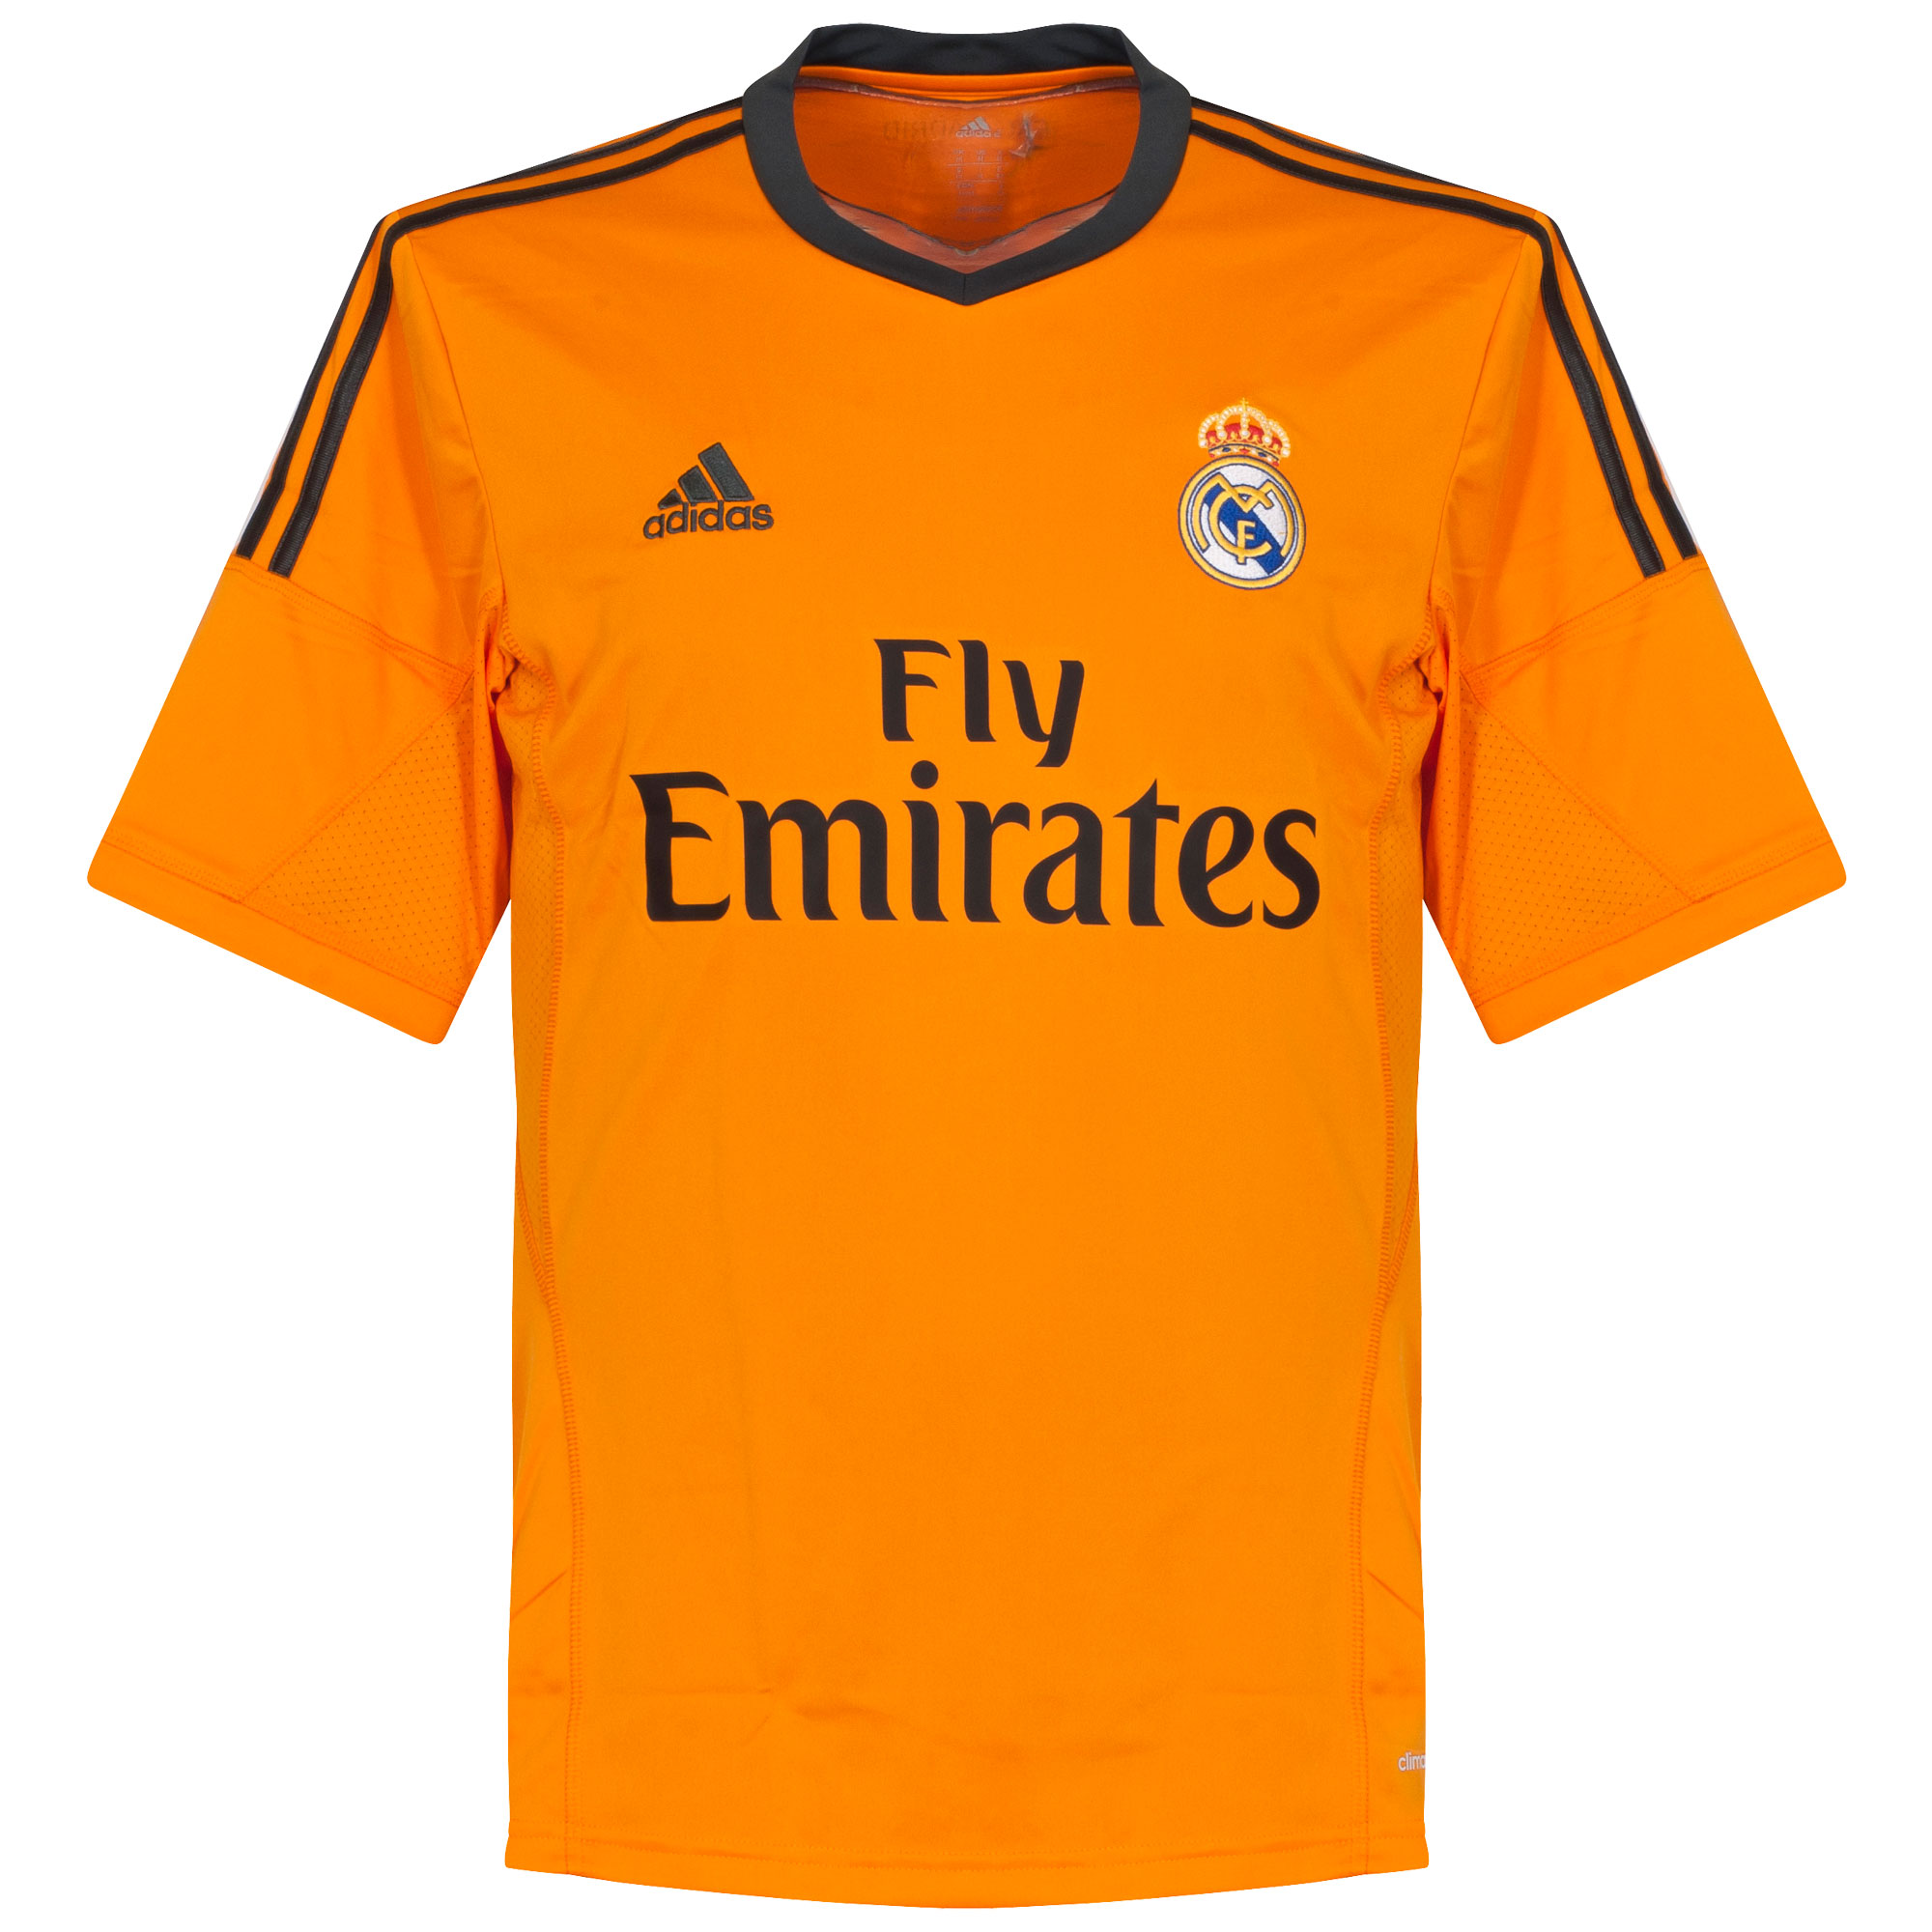 adidas Real Madrid 3rd Shirt 2013-2014 - 58